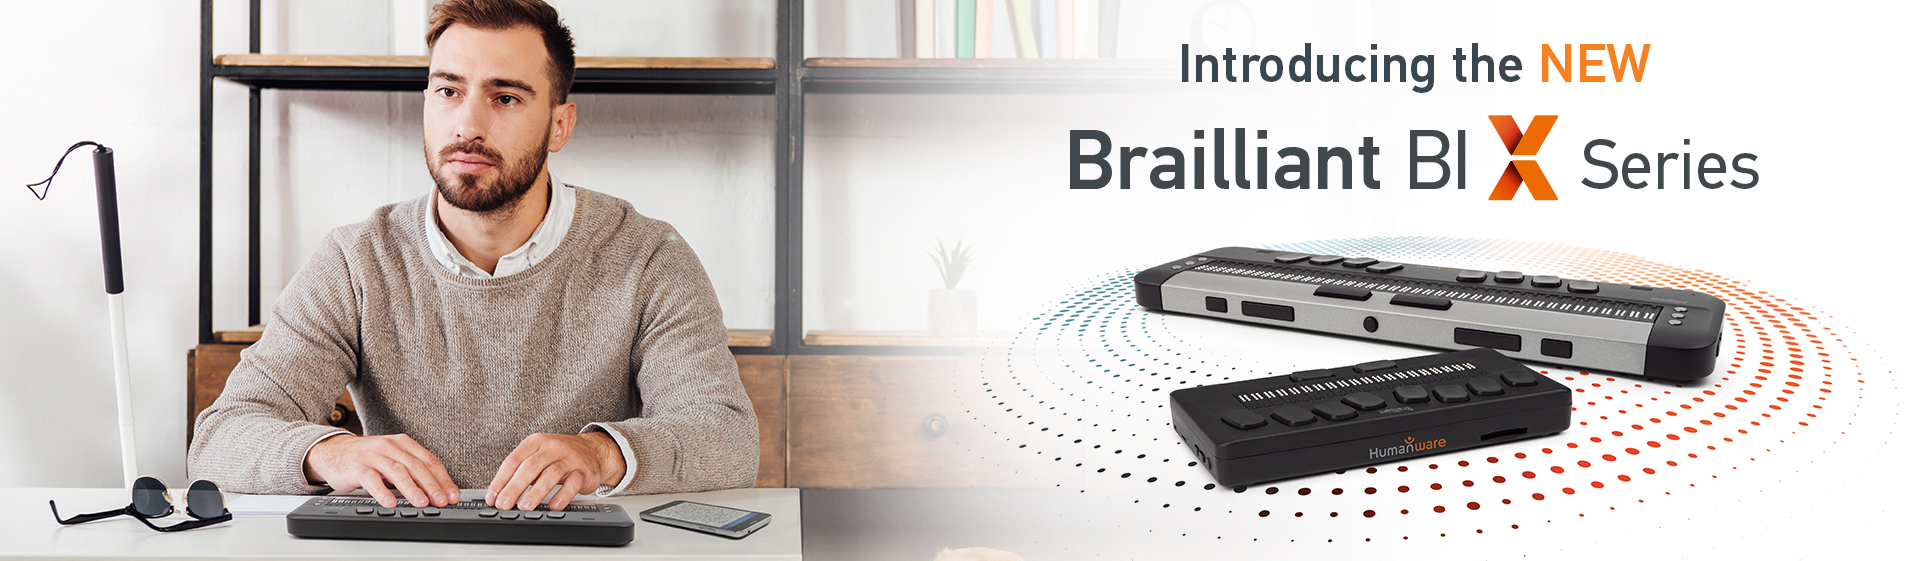 Introducing the NEW Brailliant BI X Series